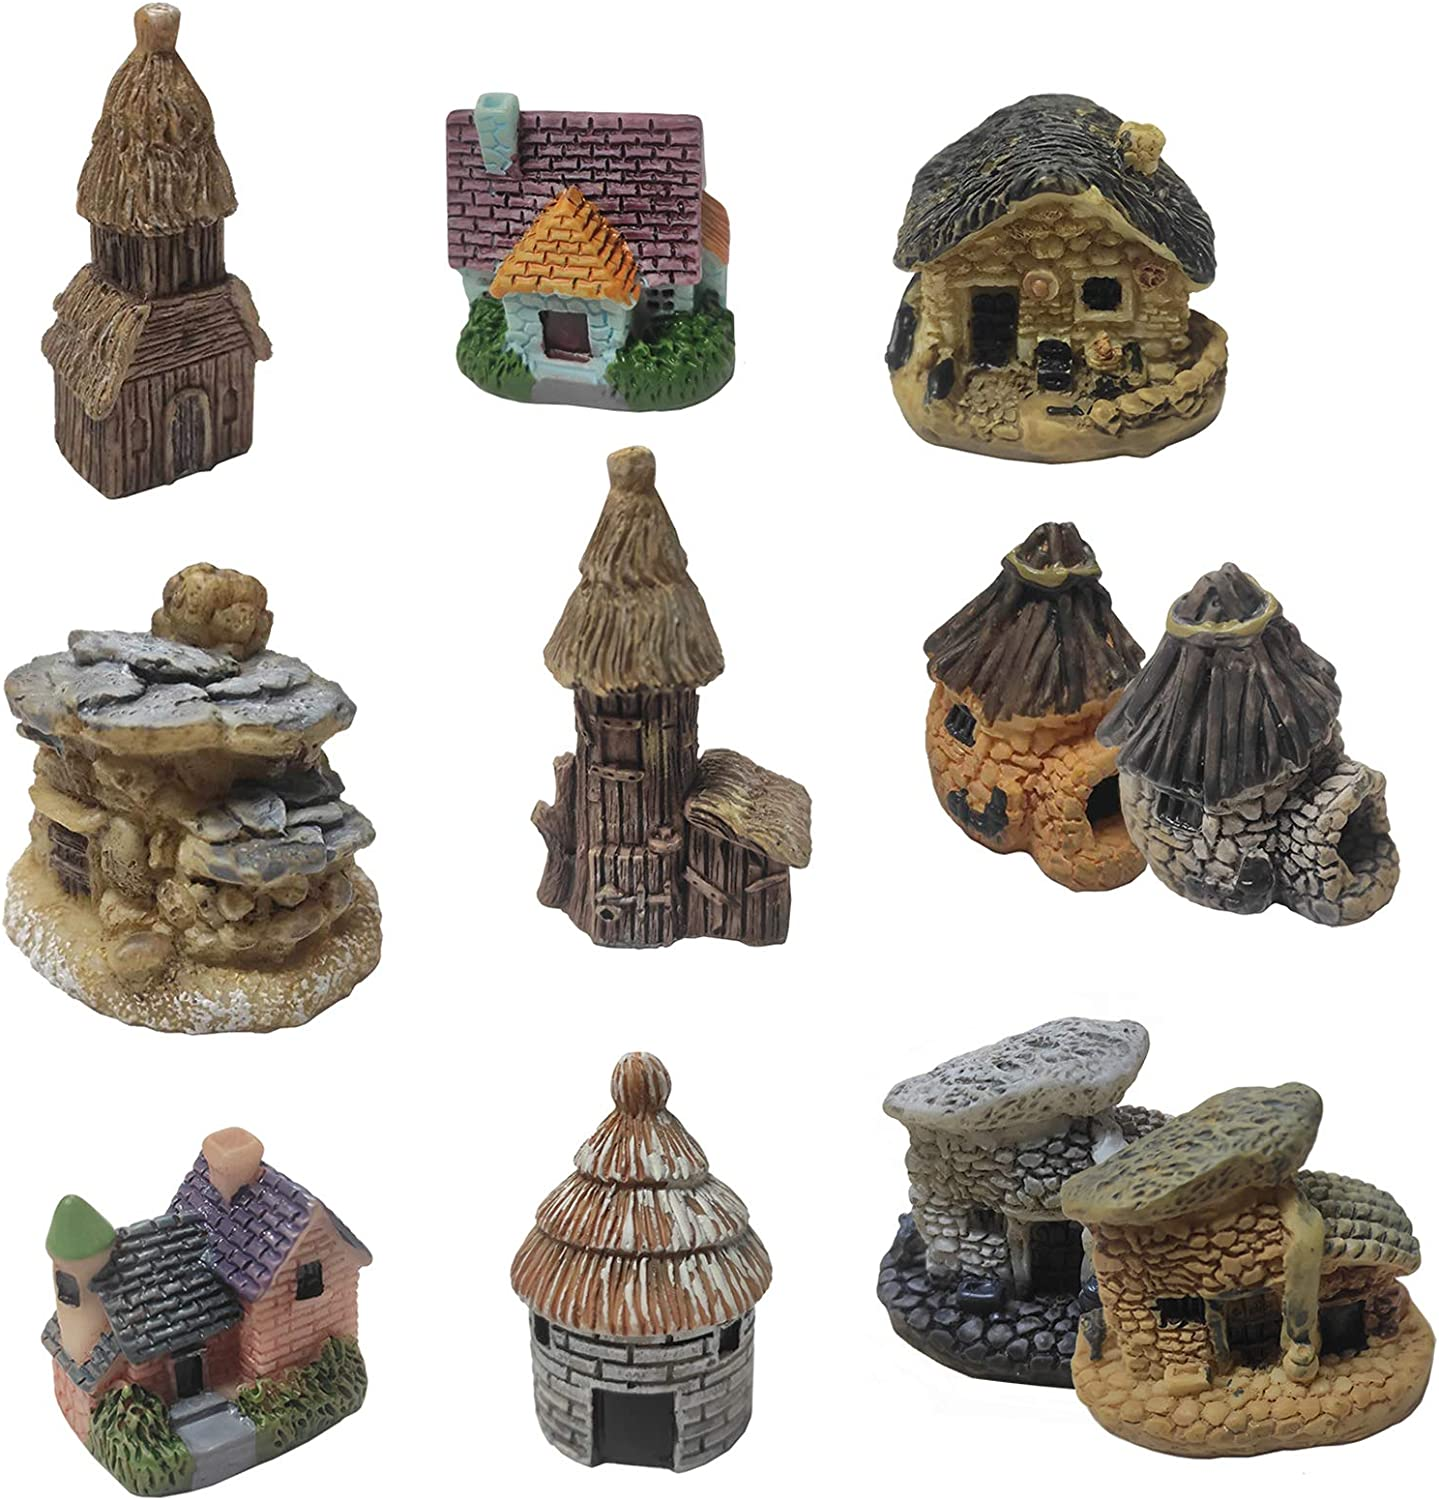 Miniature Fairy Garden House - Miniature Garden Decorations Fairy Houses For Gardens, Mini Fairy Cottage House For Garden & Patio Micro Landscape Yard Bonsai Decoration - Miniature Garden House 9pcs